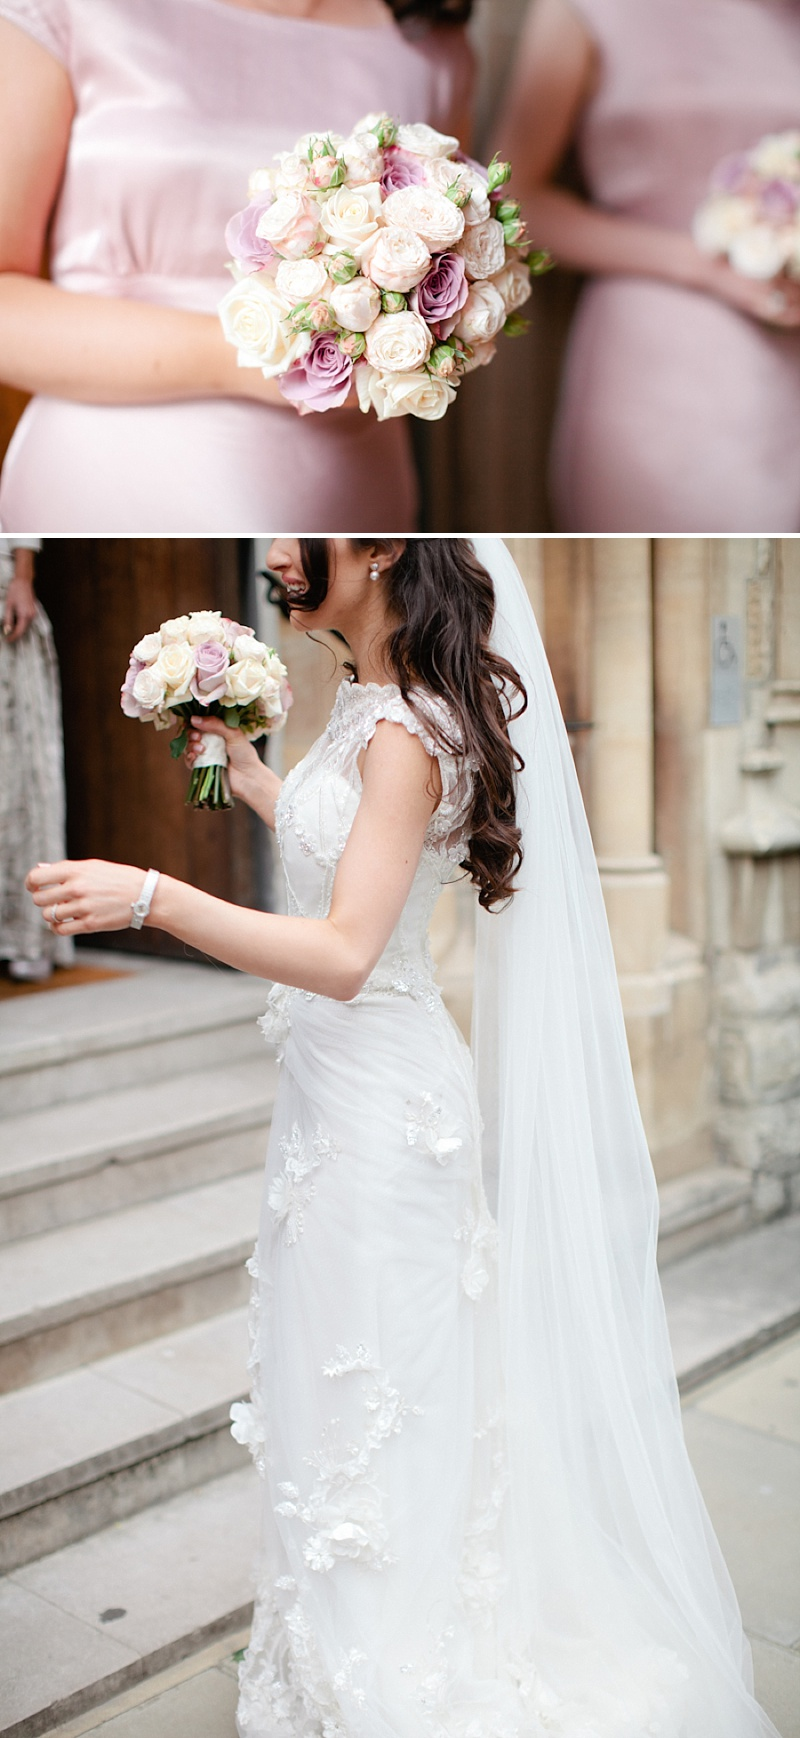 A wedding at Claridges in London with a Yolan Cris and Jenny Packham esme wedding dress 0085 Sophisticated Elegance At Claridges.